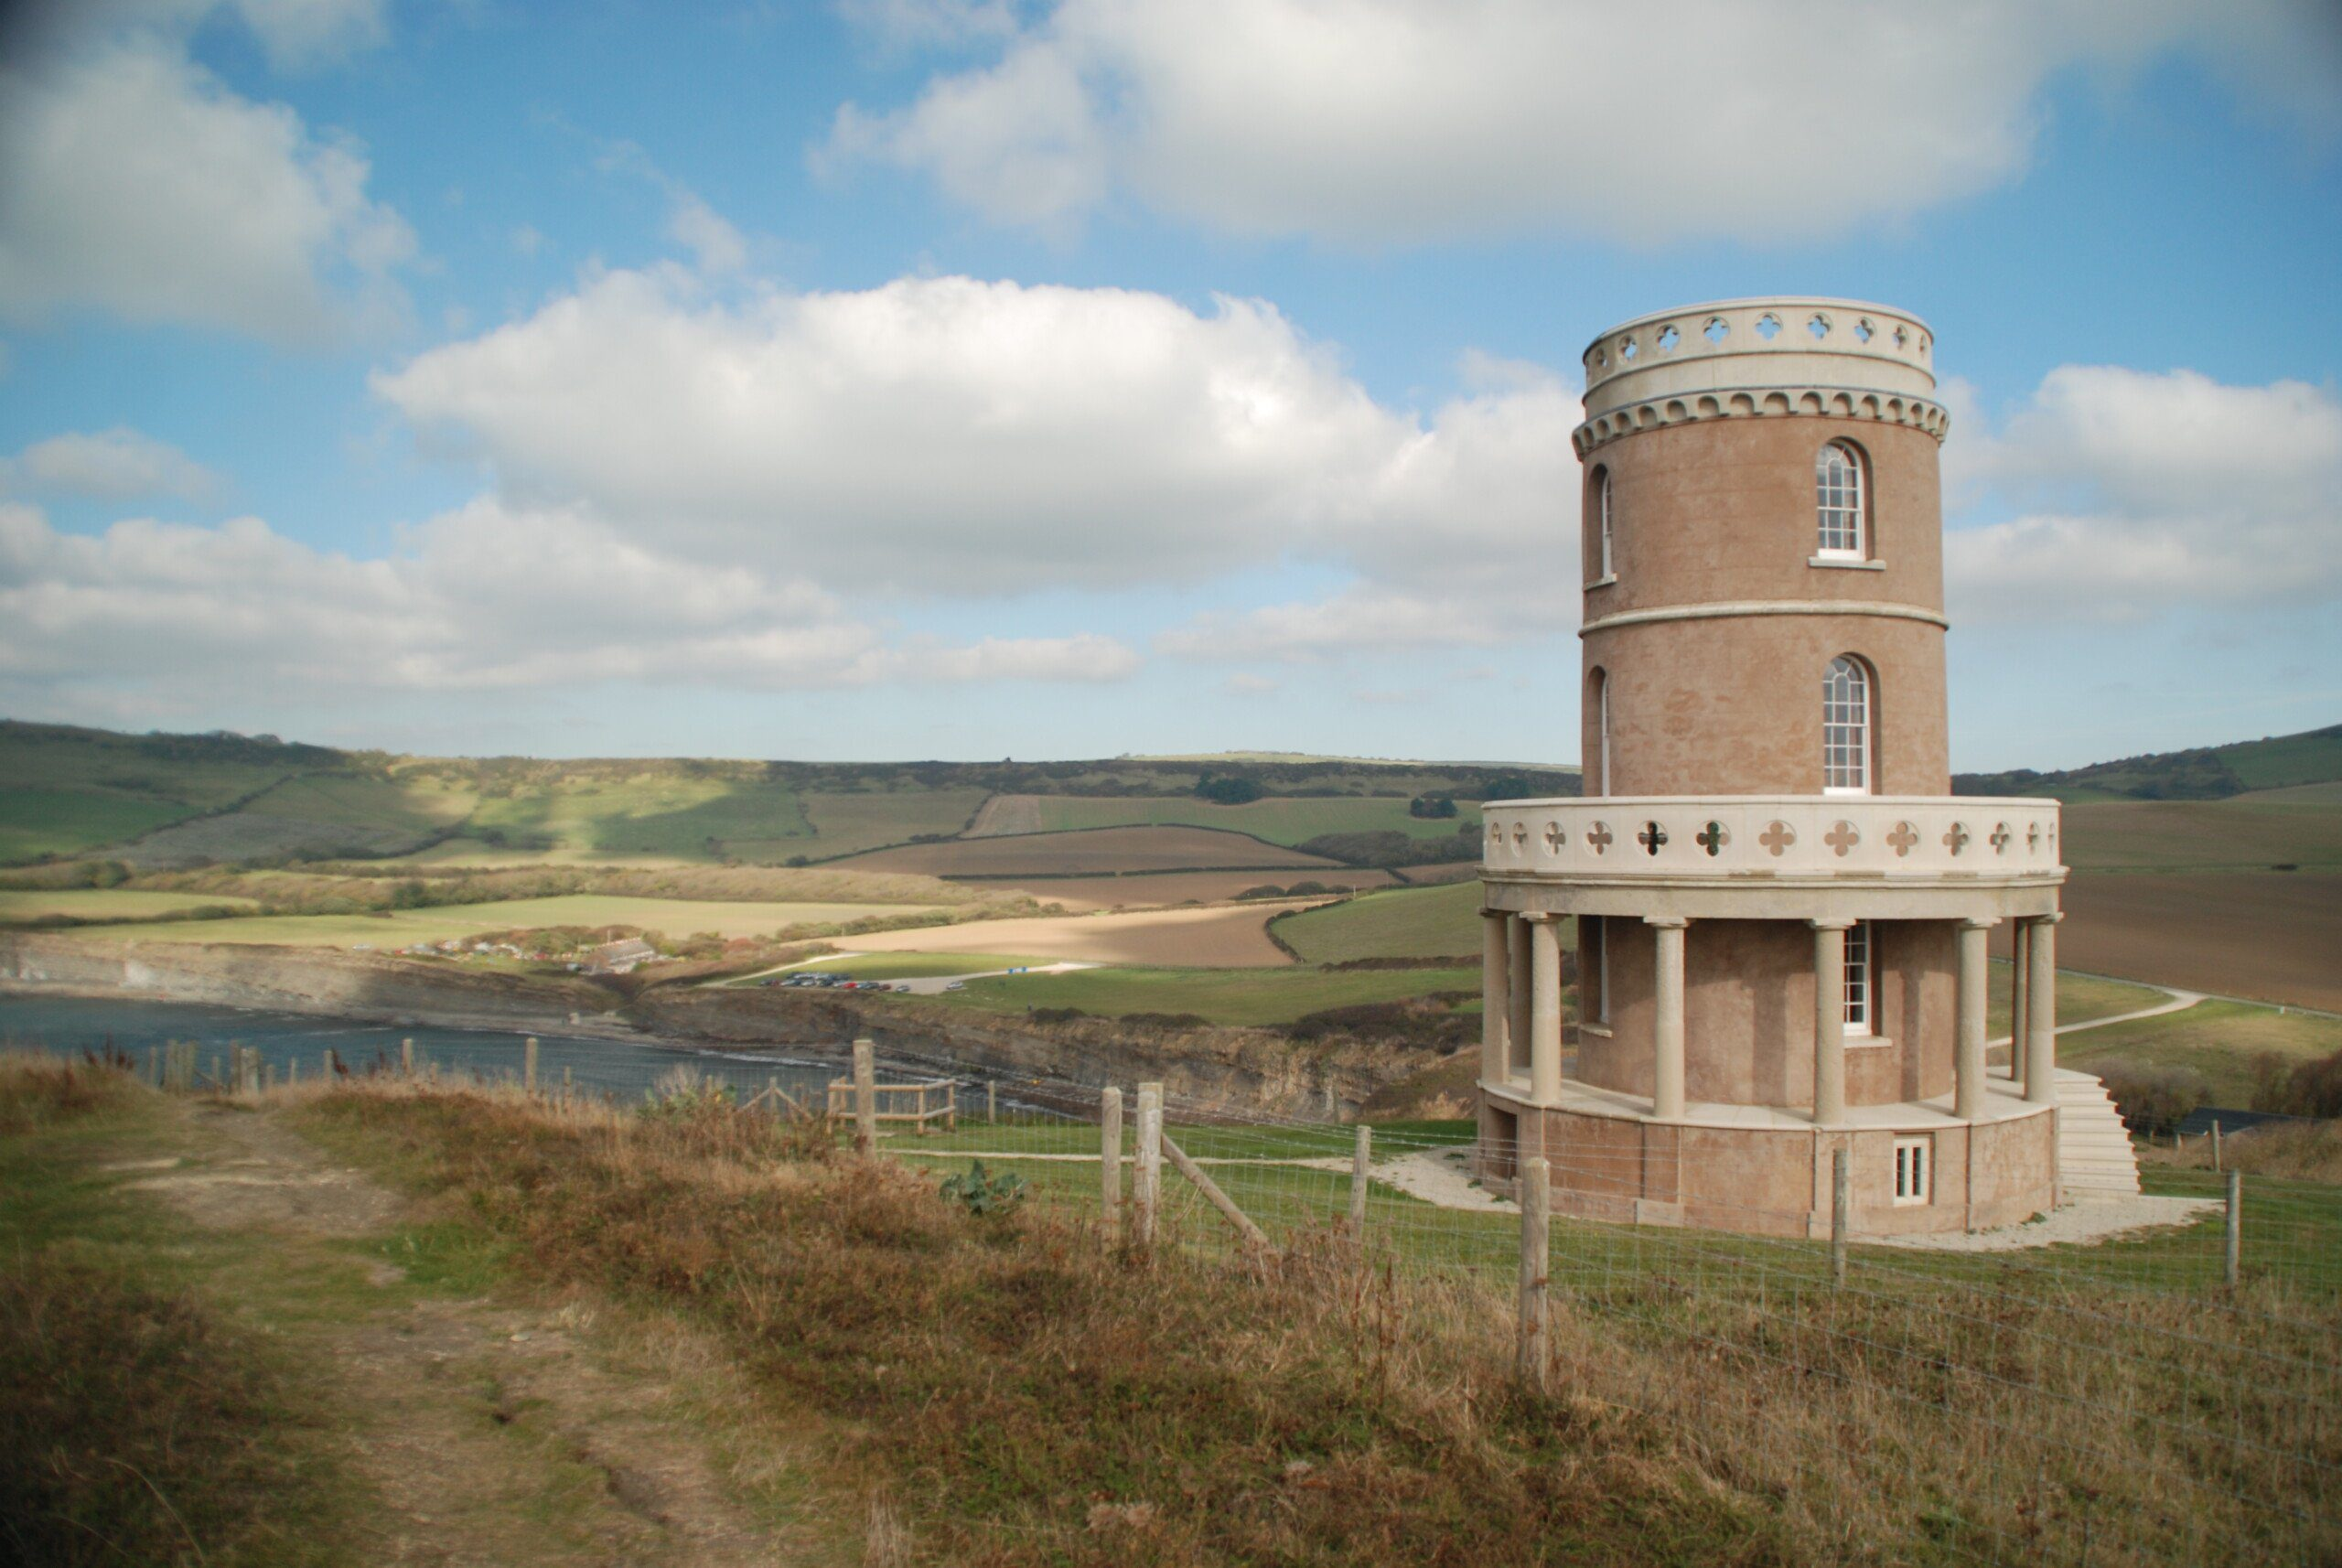 Small brick Clavell Tower overlooking fields and sea of Kimmeridge Bay, on the final lag of the South-West Coast Path